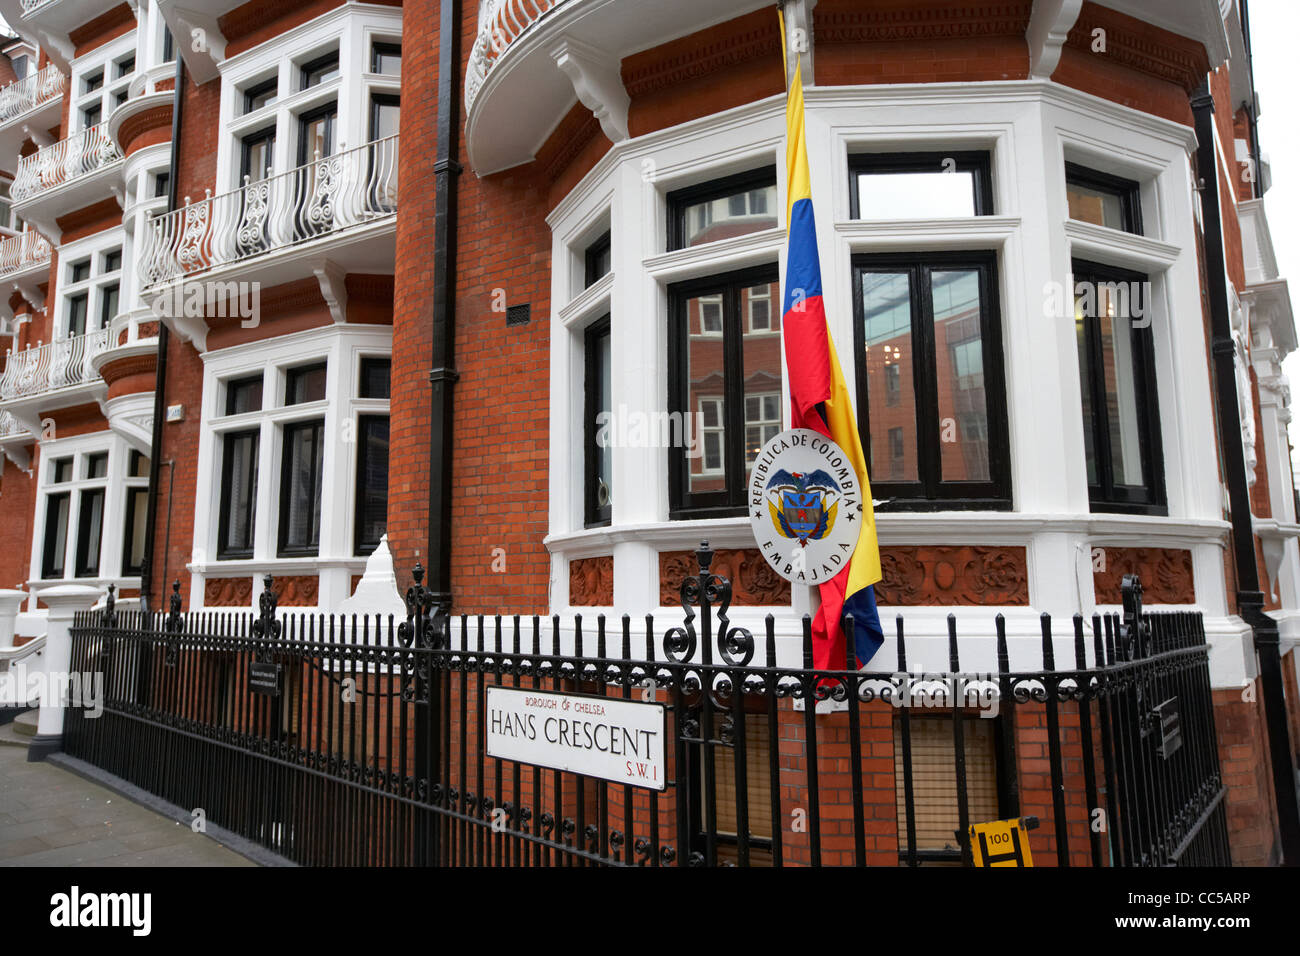 colombian embassy 3 hans crescent chelsea London England UK United kingdom ecuador ecuadorian embassy on 3rd floor - Stock Image